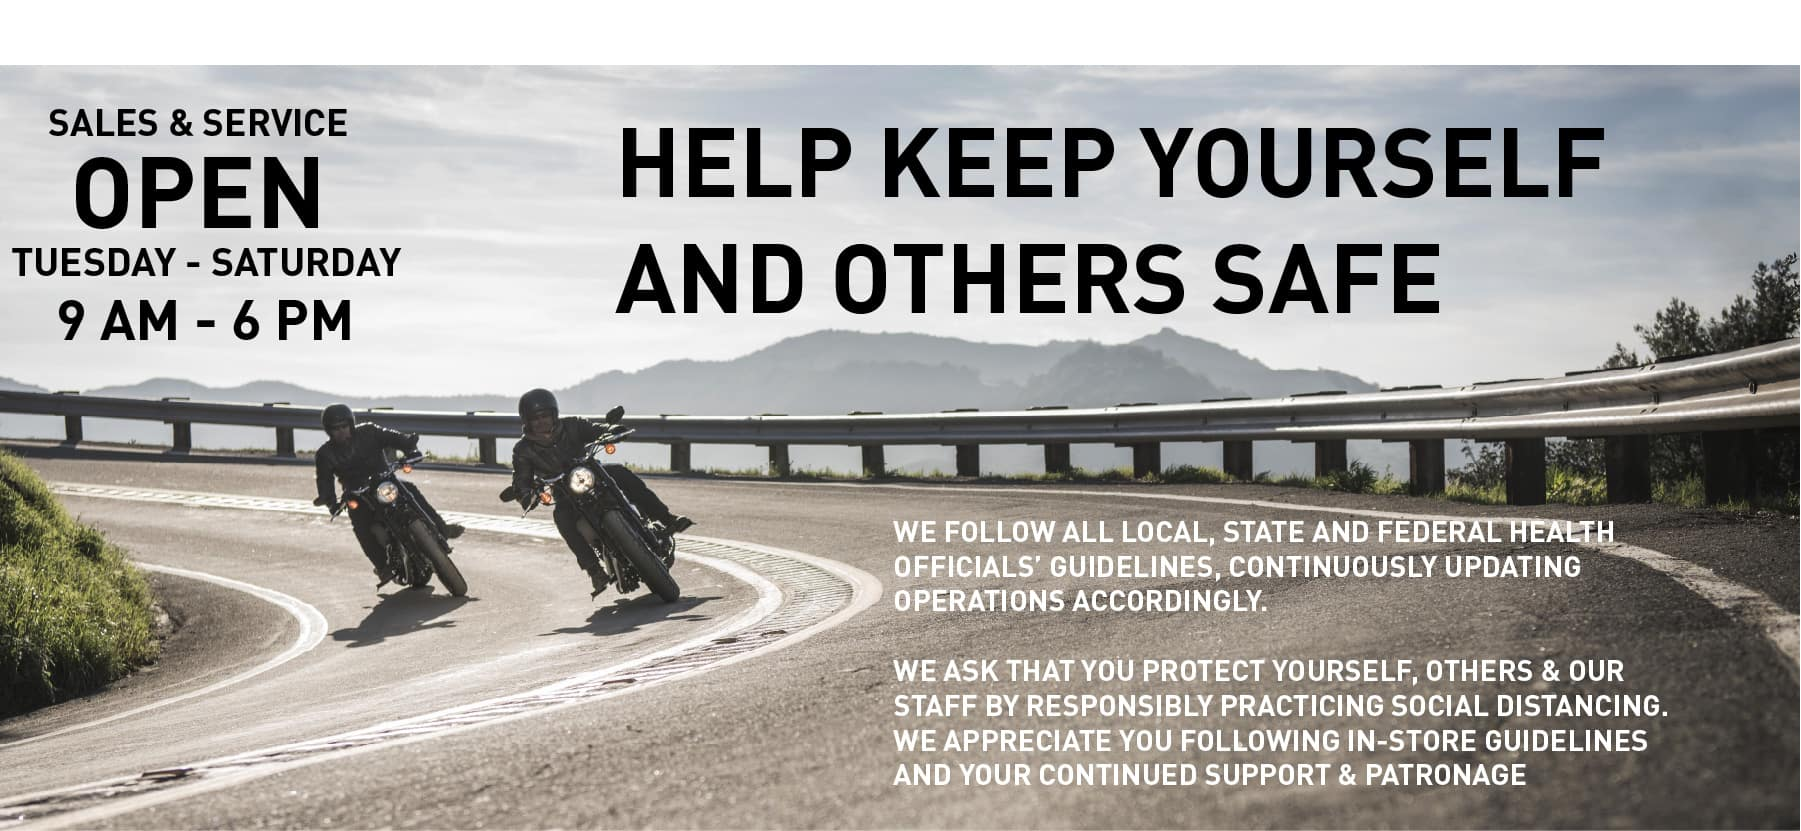 Help keep yourself and others safe